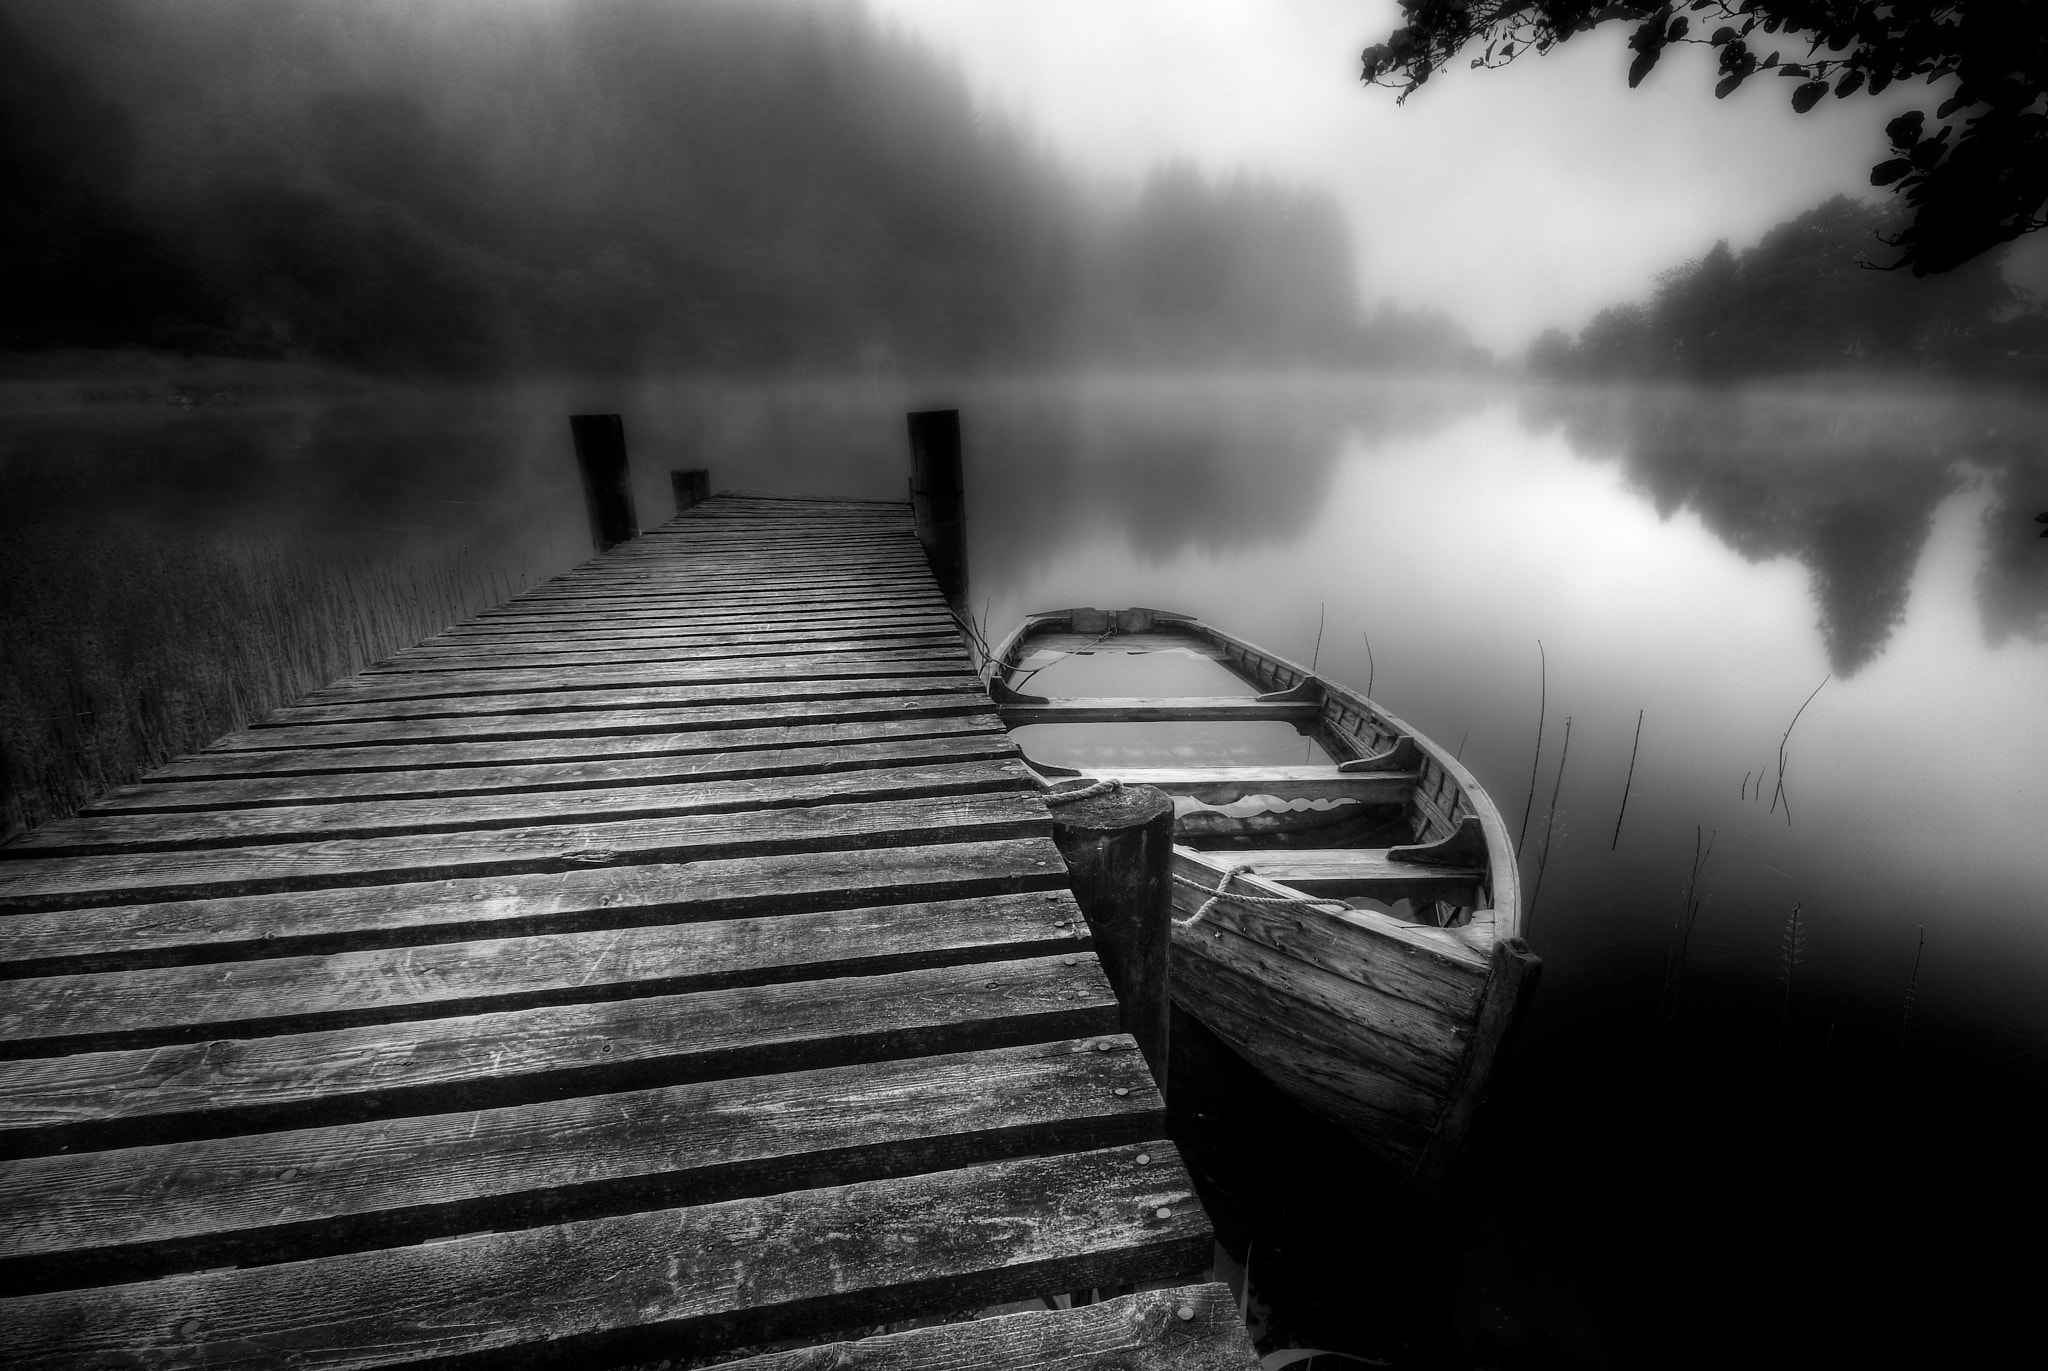 Photograph Loh Ard Jetty mono by David Mould on 500px